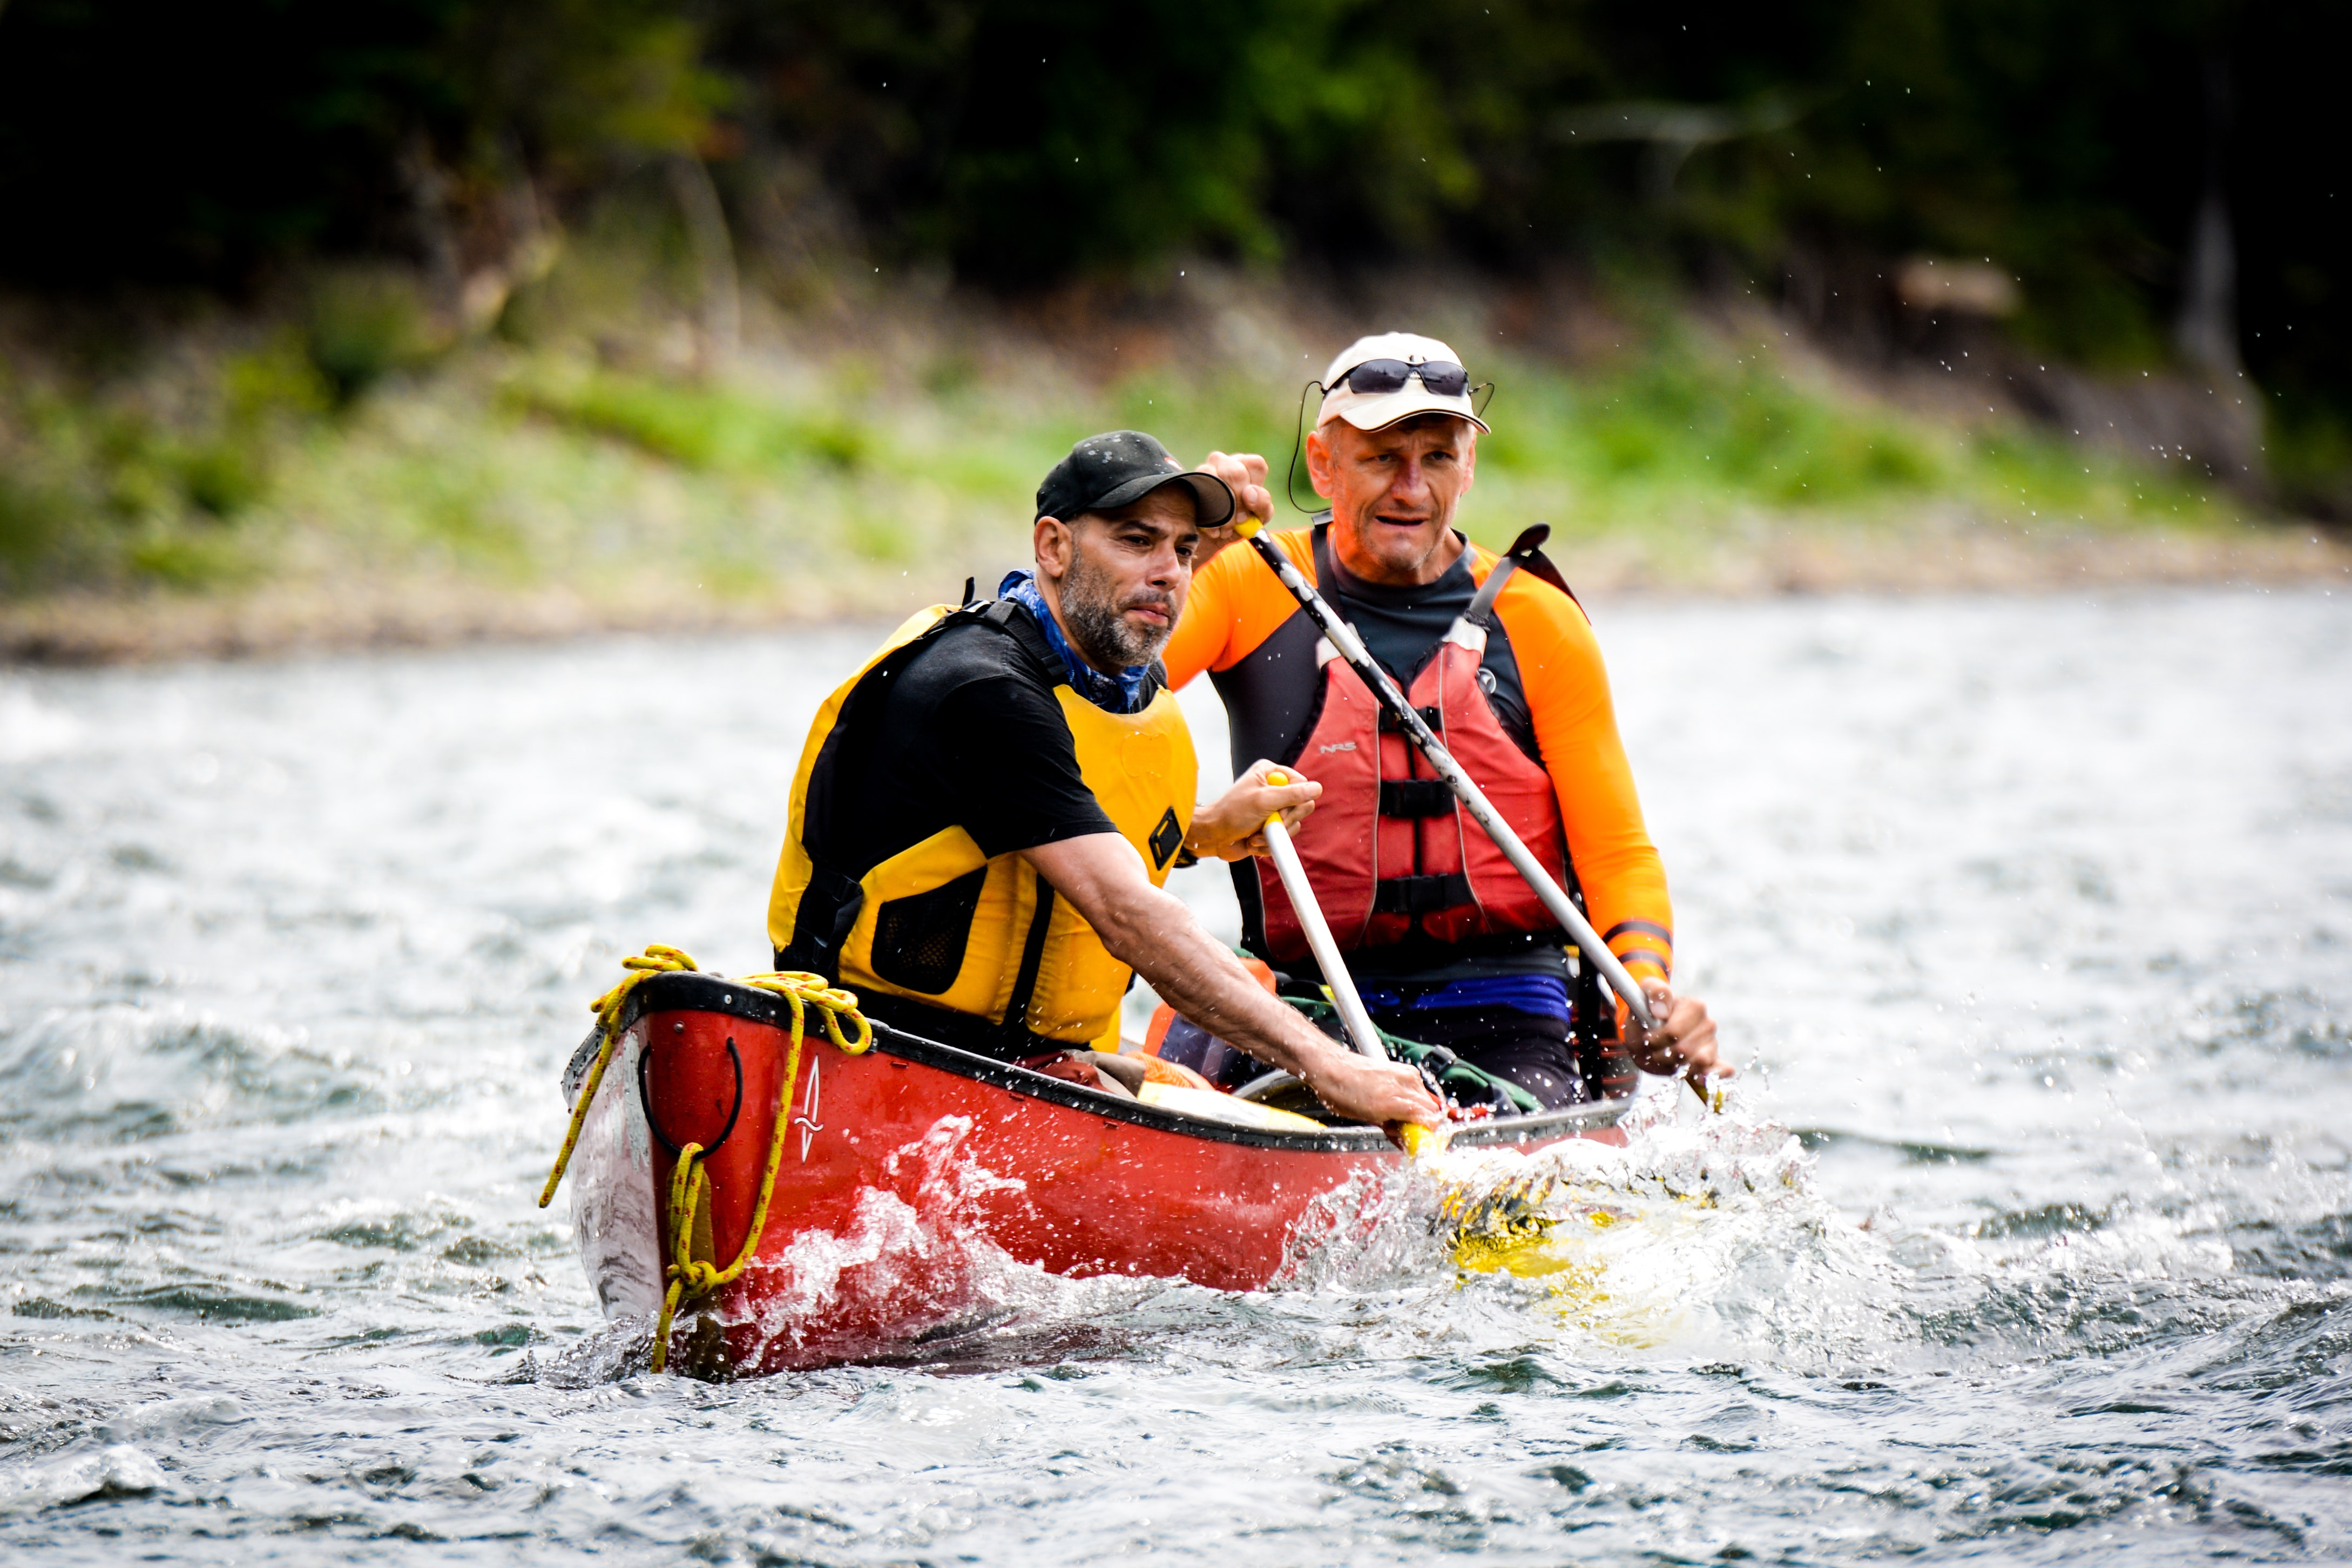 Two men wearing yellow life jackets paddling in a red canoe in the rapids